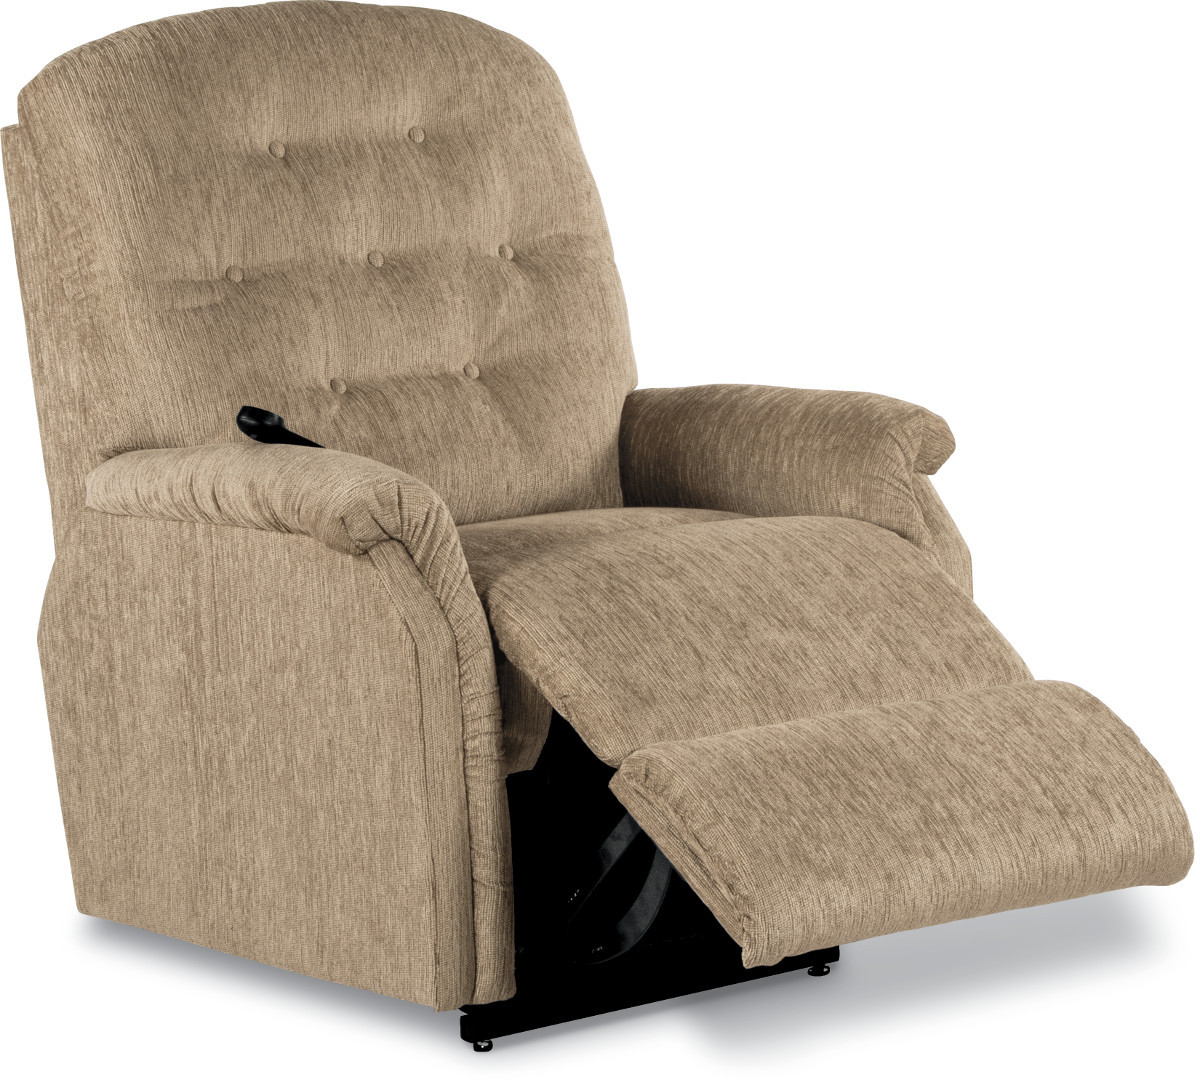 The Ally Reclina Way Recliner Sold At Rose Brothers Furniture Serving Wilmington And